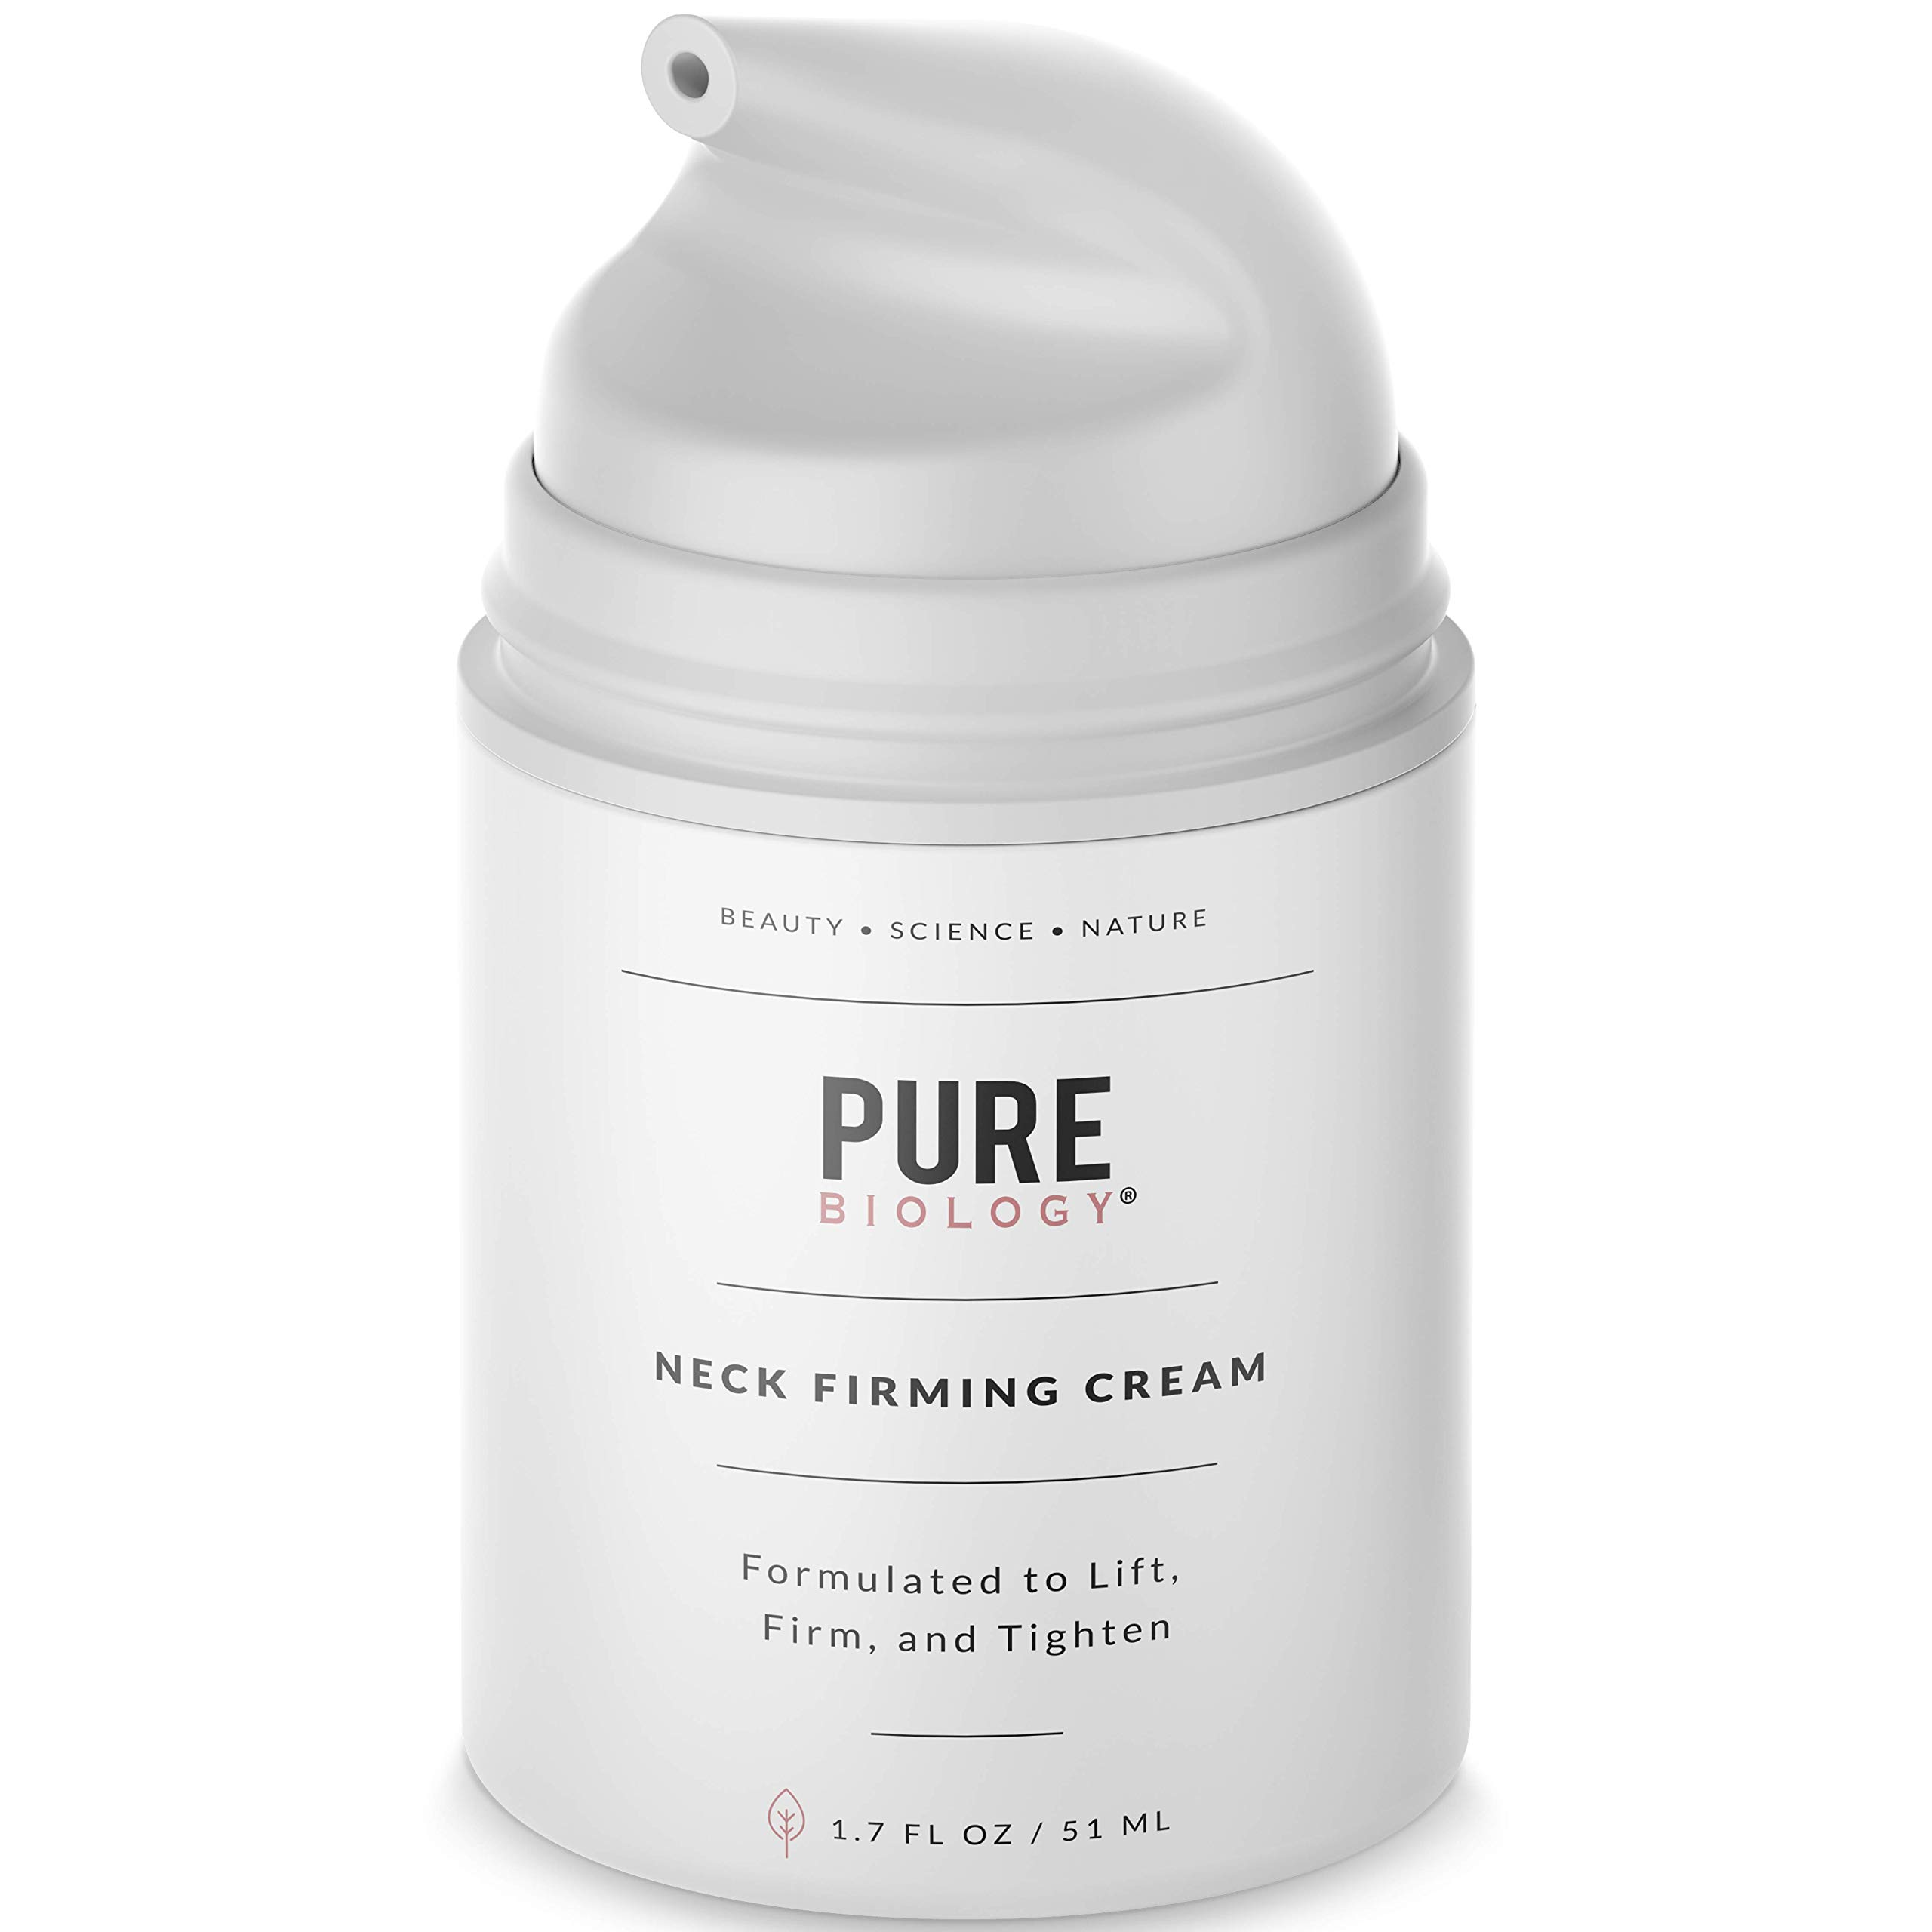 Premium Neck Cream with Vitamin C & E, Hyaluronic Acid & Breakthrough Anti Aging Complexes to Reduce Appearance of Wrinkles & Fine Lines - Neck, Chest & Décolleté Skin Care for Men & Women by Pure Biology